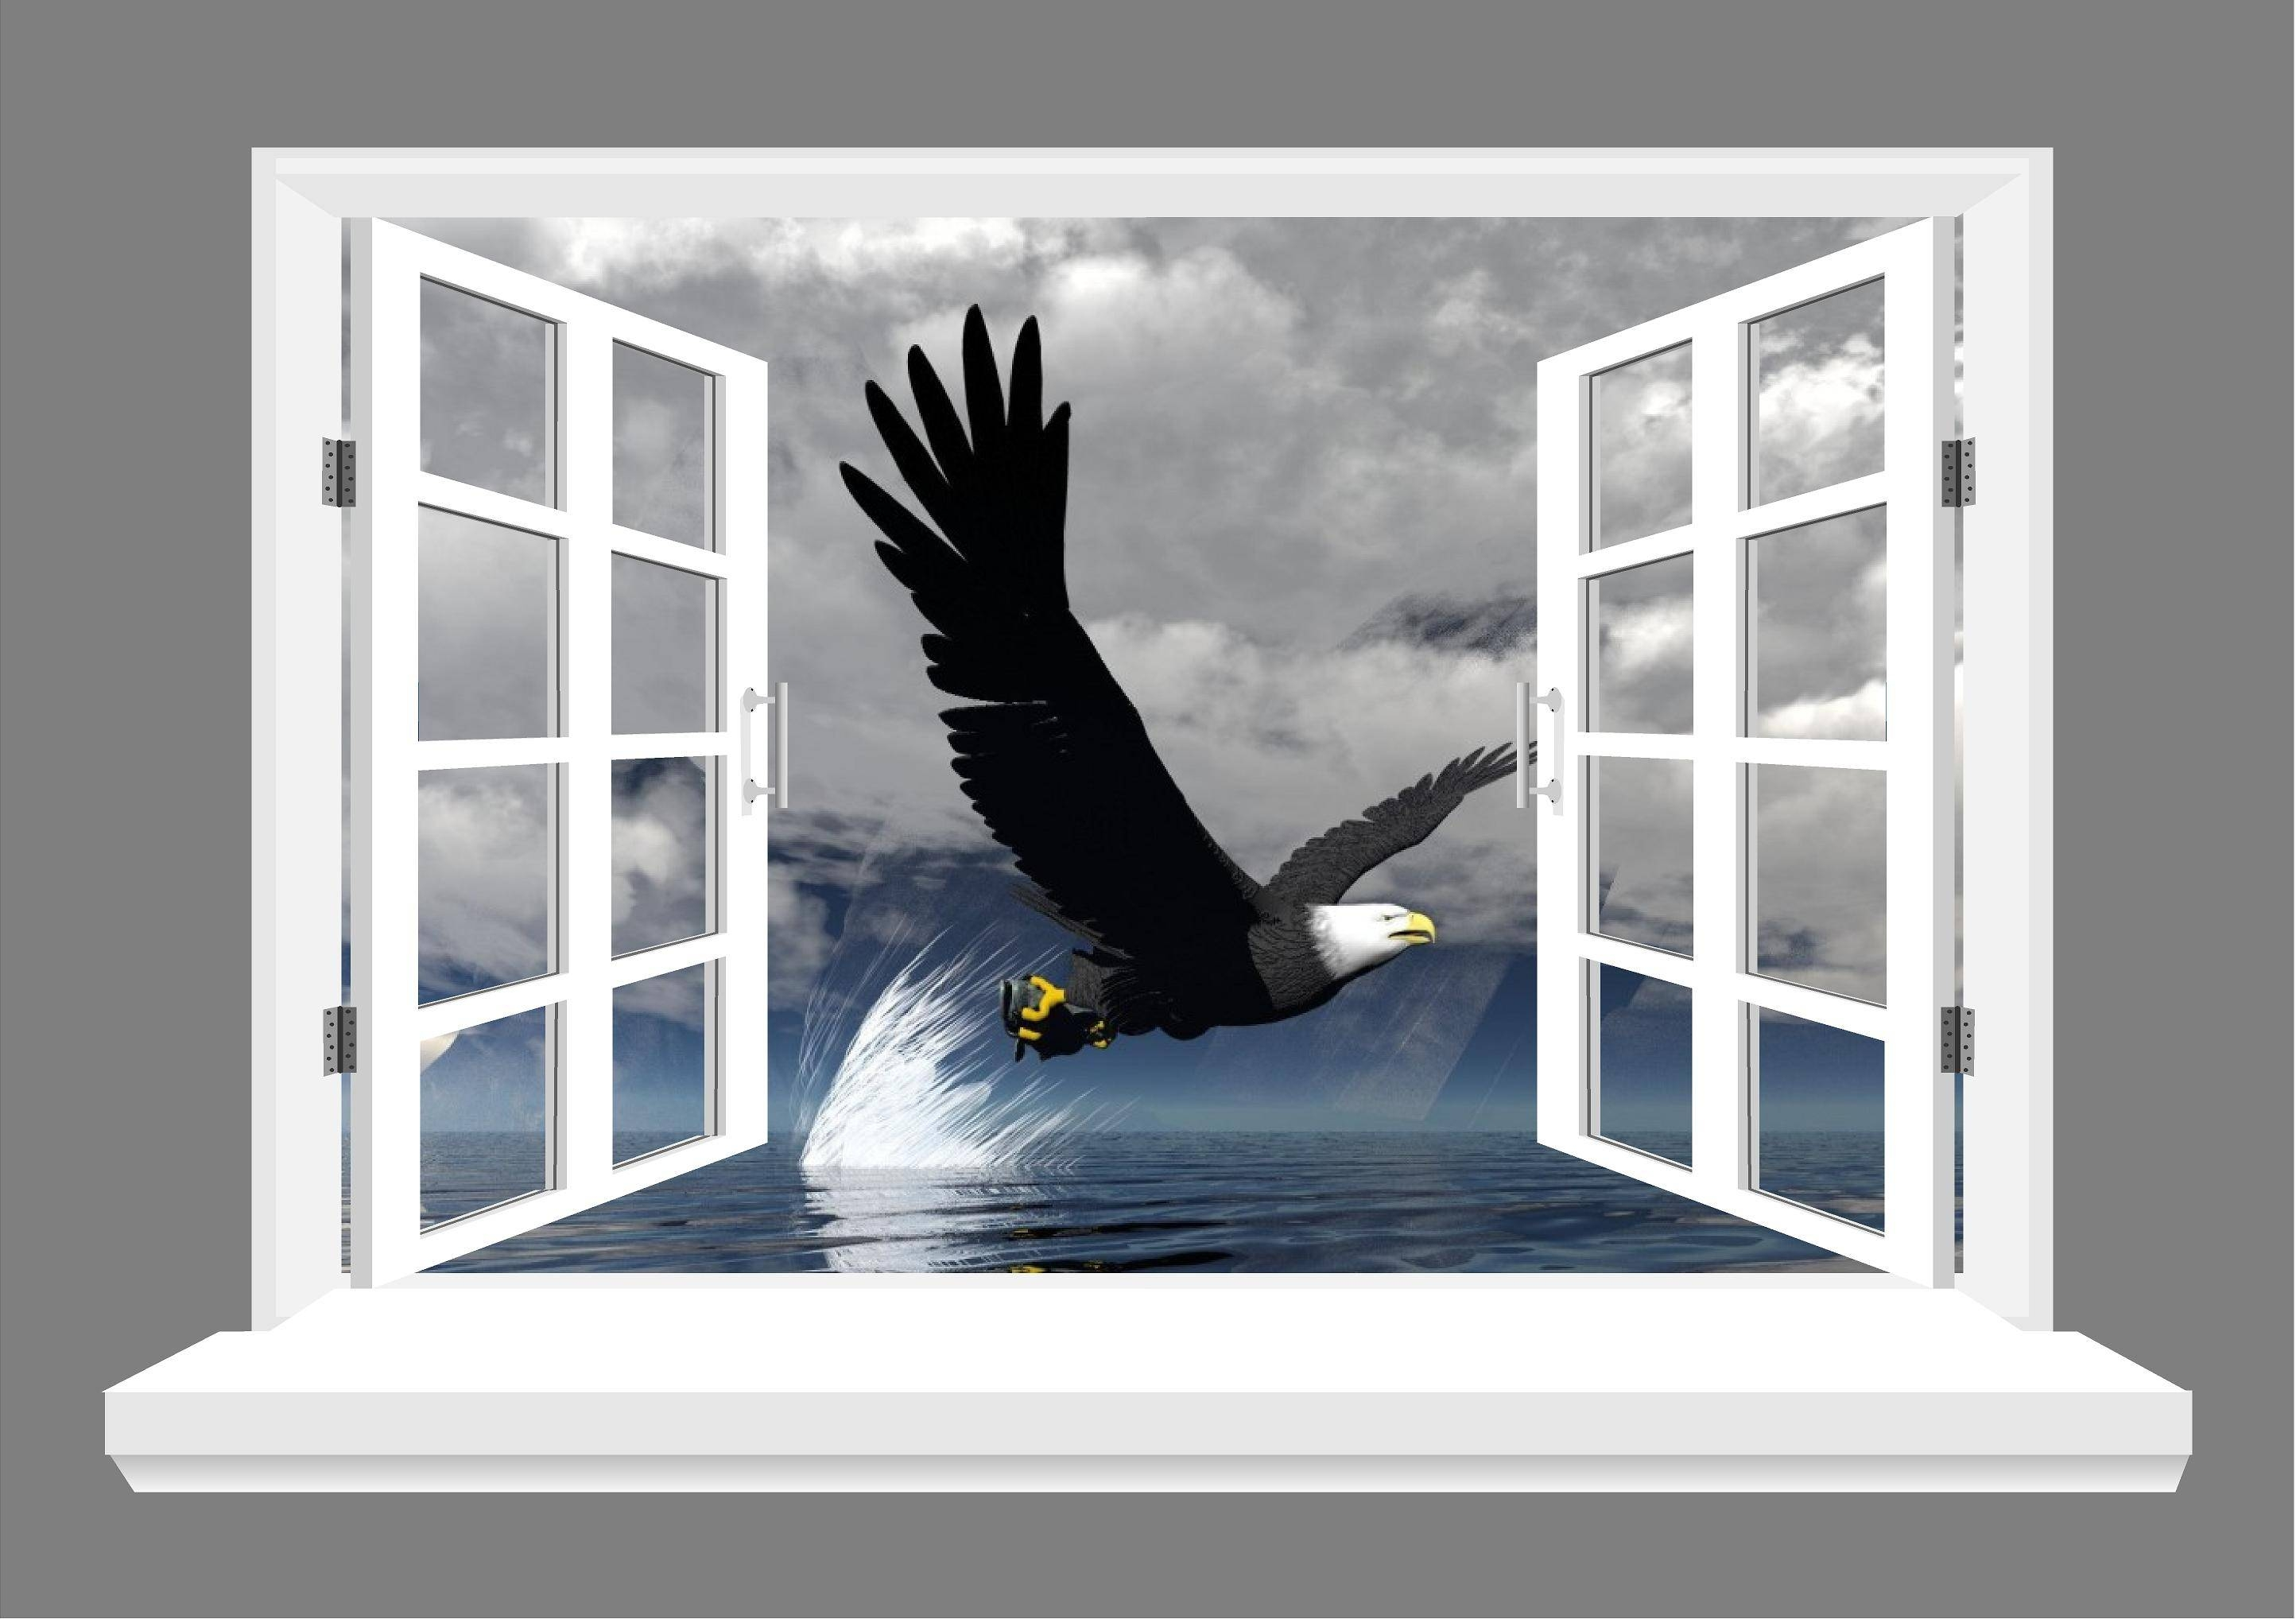 Wall Art Design Ideas: Eagly Flying 3D Wall Art Bird Windows For Best And Newest 3D Wall Art Window (View 19 of 20)